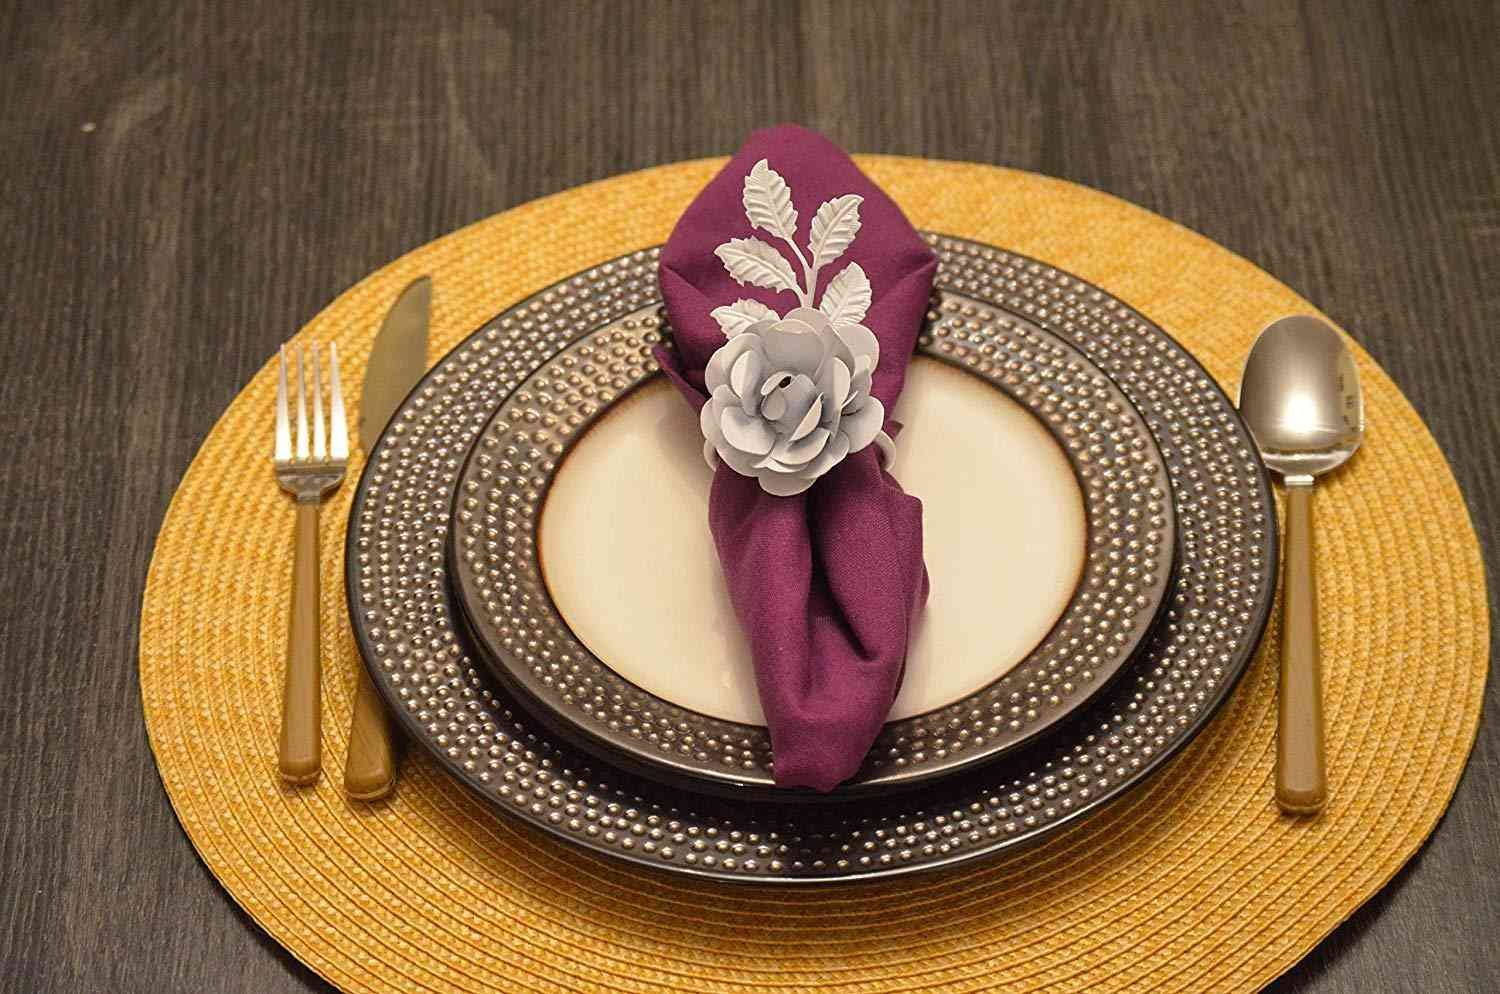 Handcrafted Luxurious Rose Napkin Rings Set